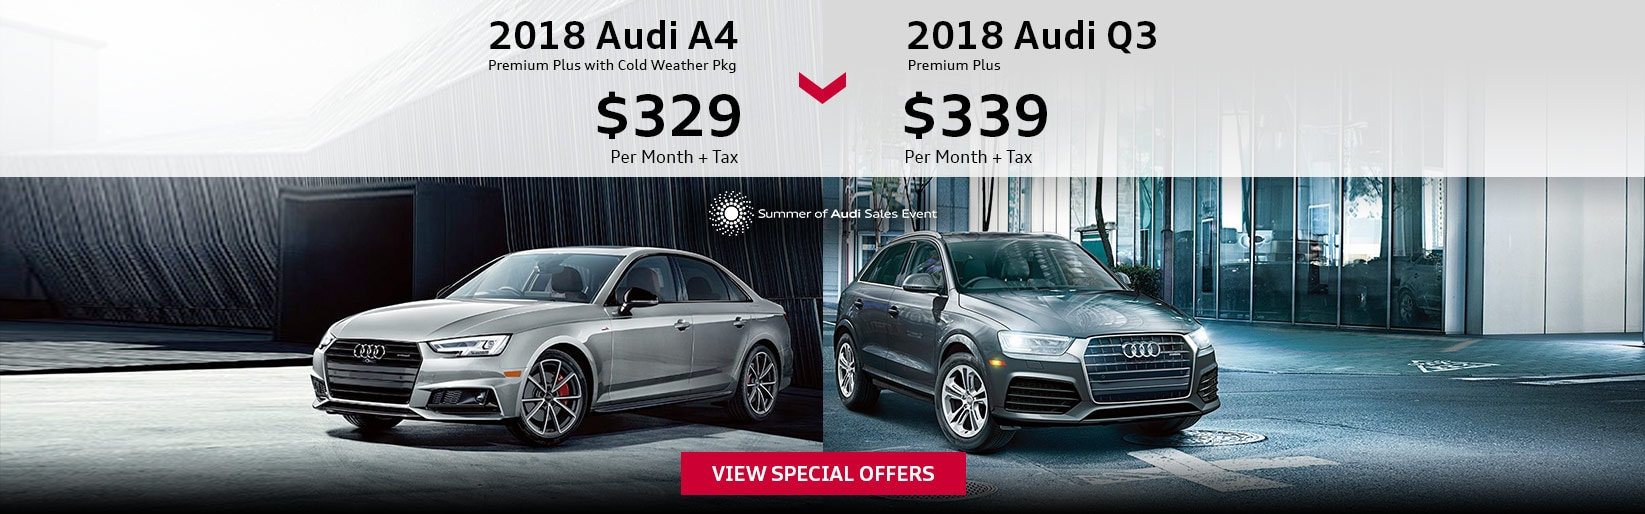 Audi Seattle | New & Pre-Owned Audi Dealership in Seattle, WA